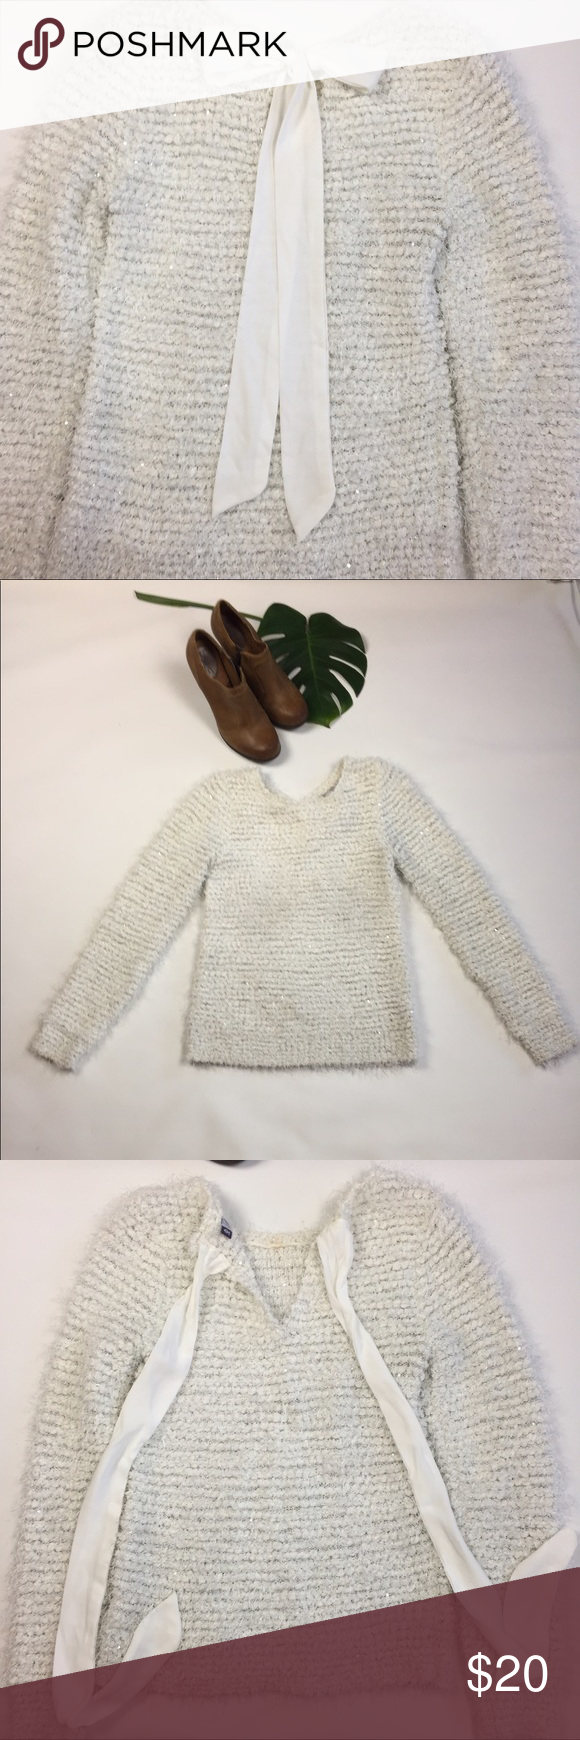 Jennifer Lopez sweater with accent bow in the back Jennifer Lopez sweater with accent bow in the back SZ XS white with shiny sequence sprinkled throughout also with longer hairlike fur throughout as accent(see close up picture) JLo Jennifer Lopez Sweaters Crew & Scoop Necks